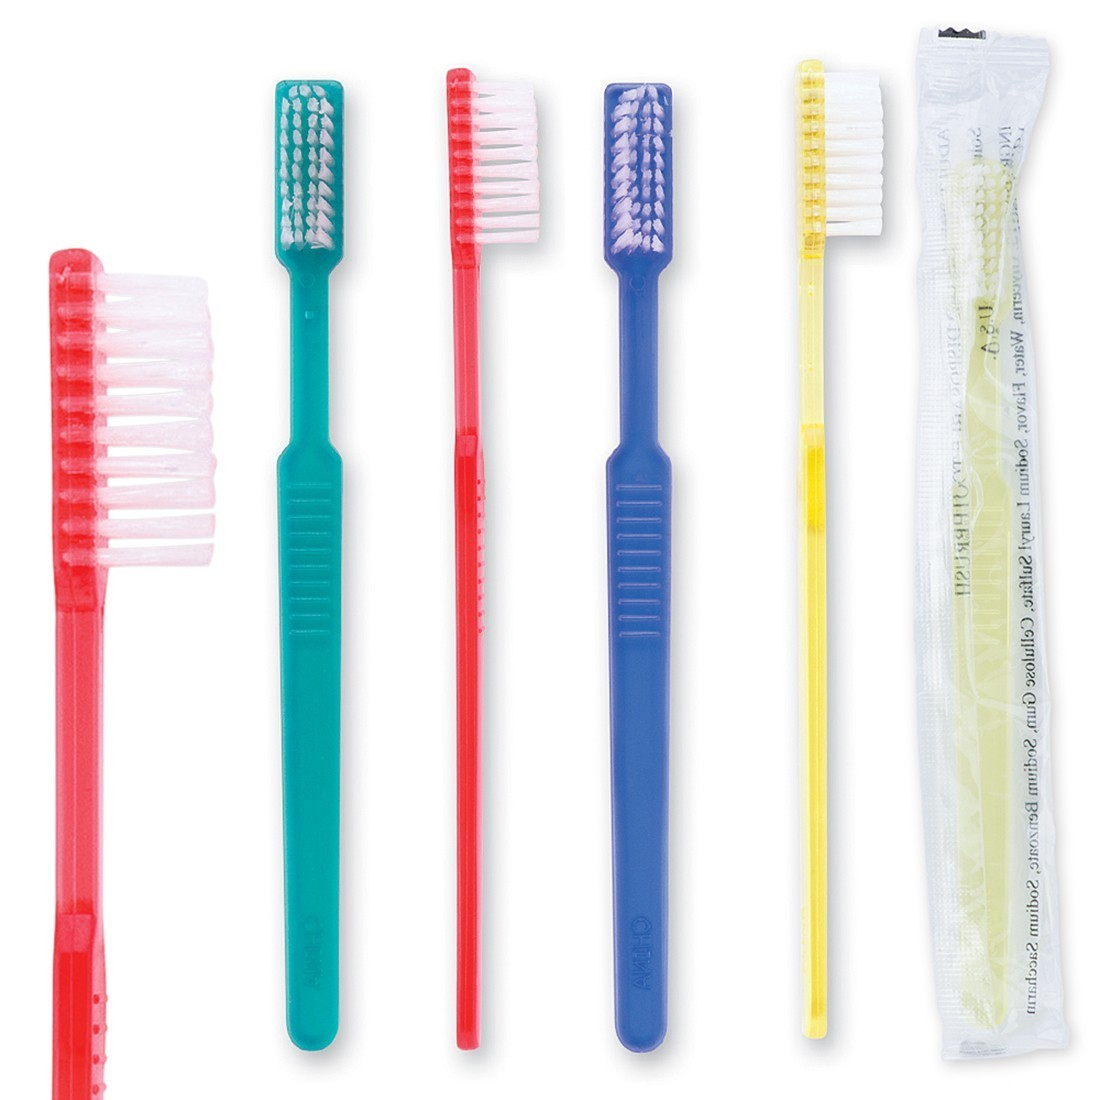 OraLine Adult Pre-Pasted Disposable Toothbrushes [image]